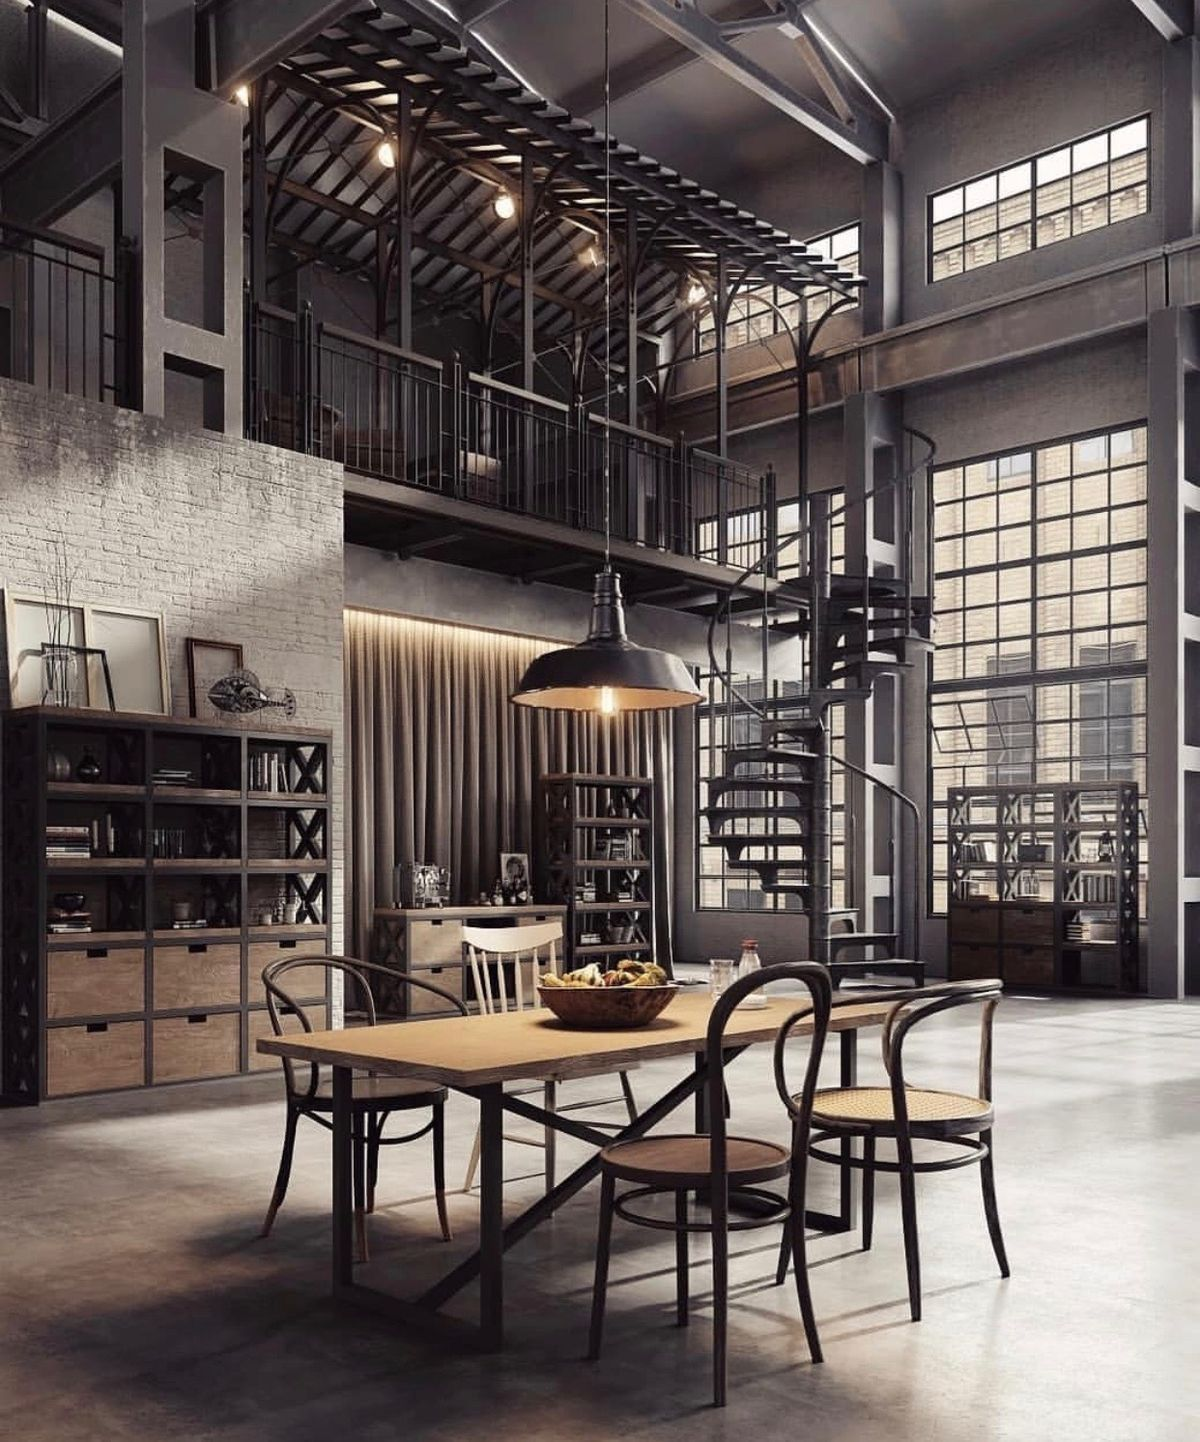 I Choose This Pin For Actual Lighting Because Of The Edison Bulbs Used To Give Light To This Most Industrial Loft Design Industrial Interior Design Loft Design